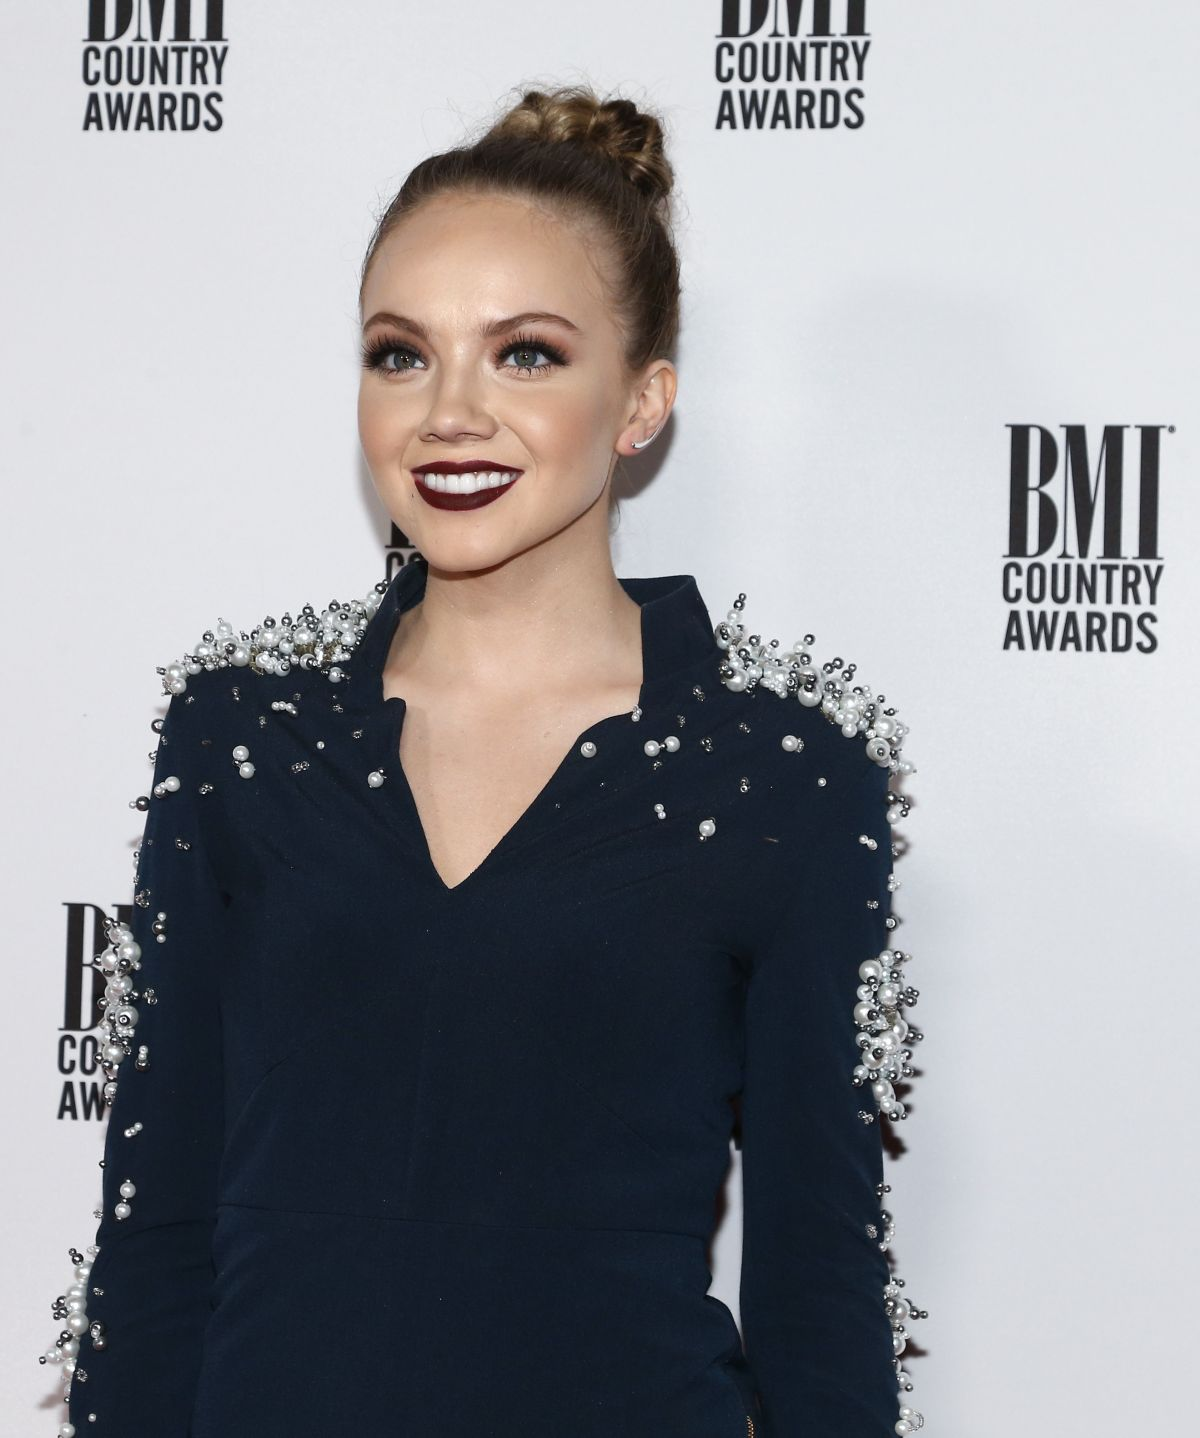 DANIELLE BRANDBERY at 64th Annual BMI Country Awards in Nashville 11/01/2016